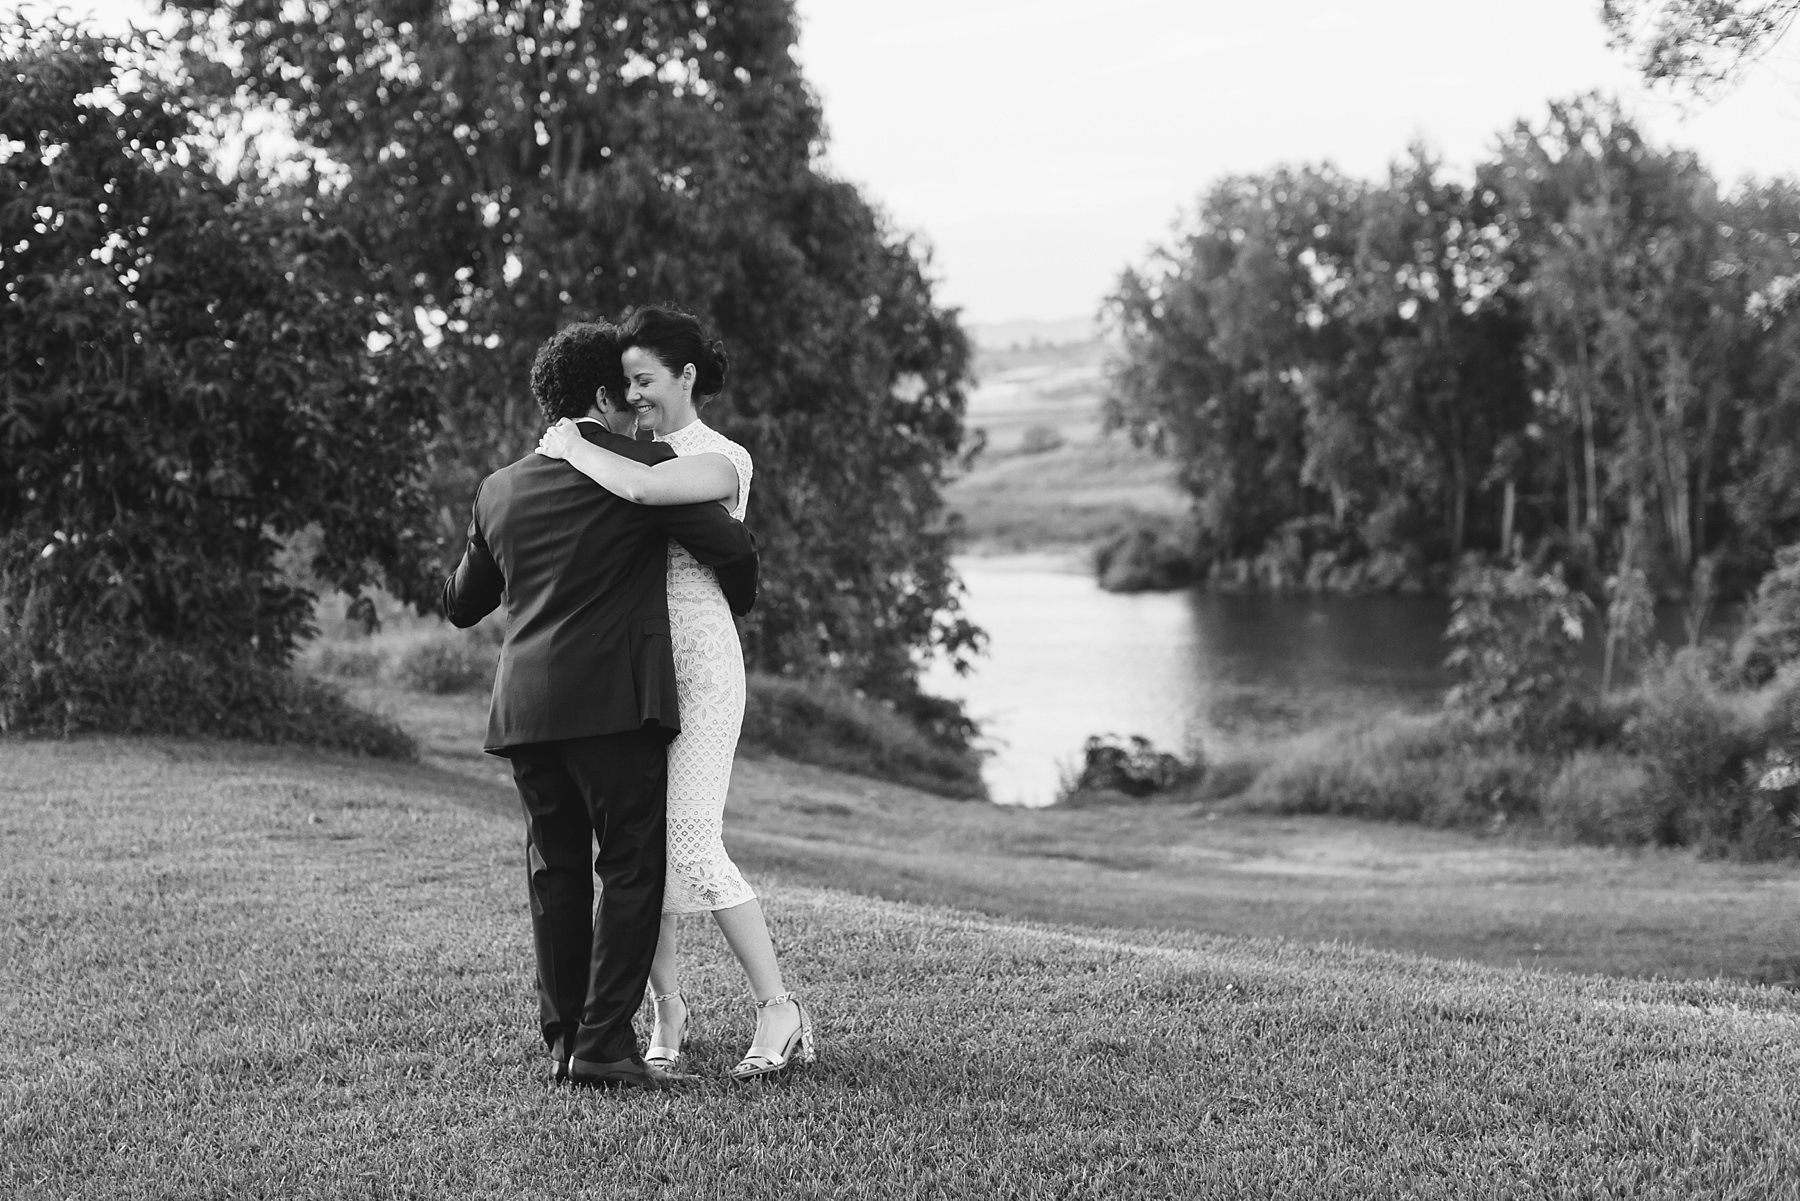 intimate wedding photography by jonathan david